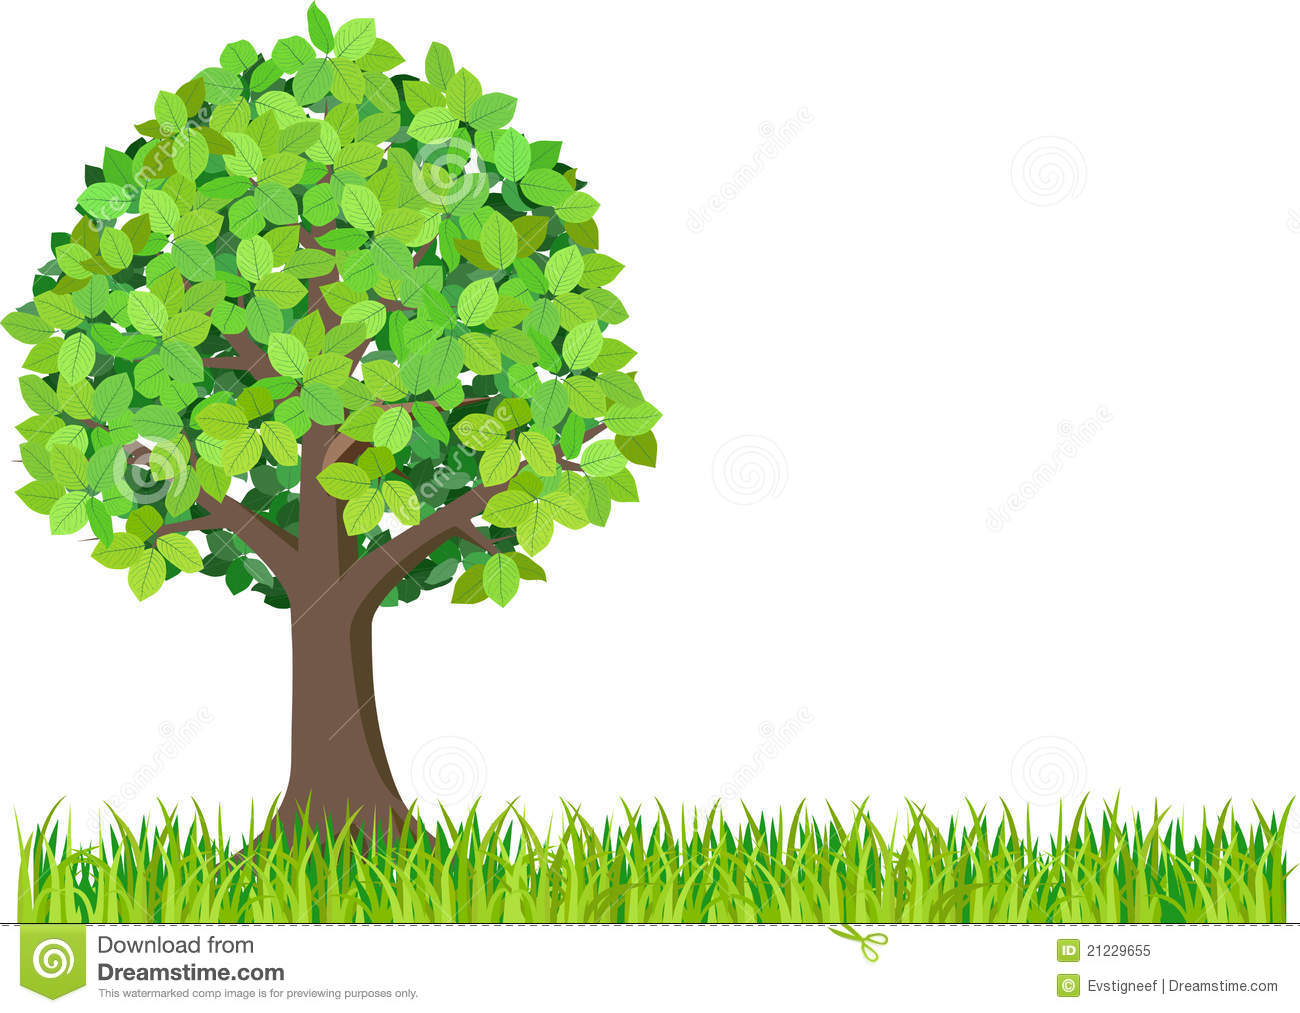 Trees lawn clipart - Clipground